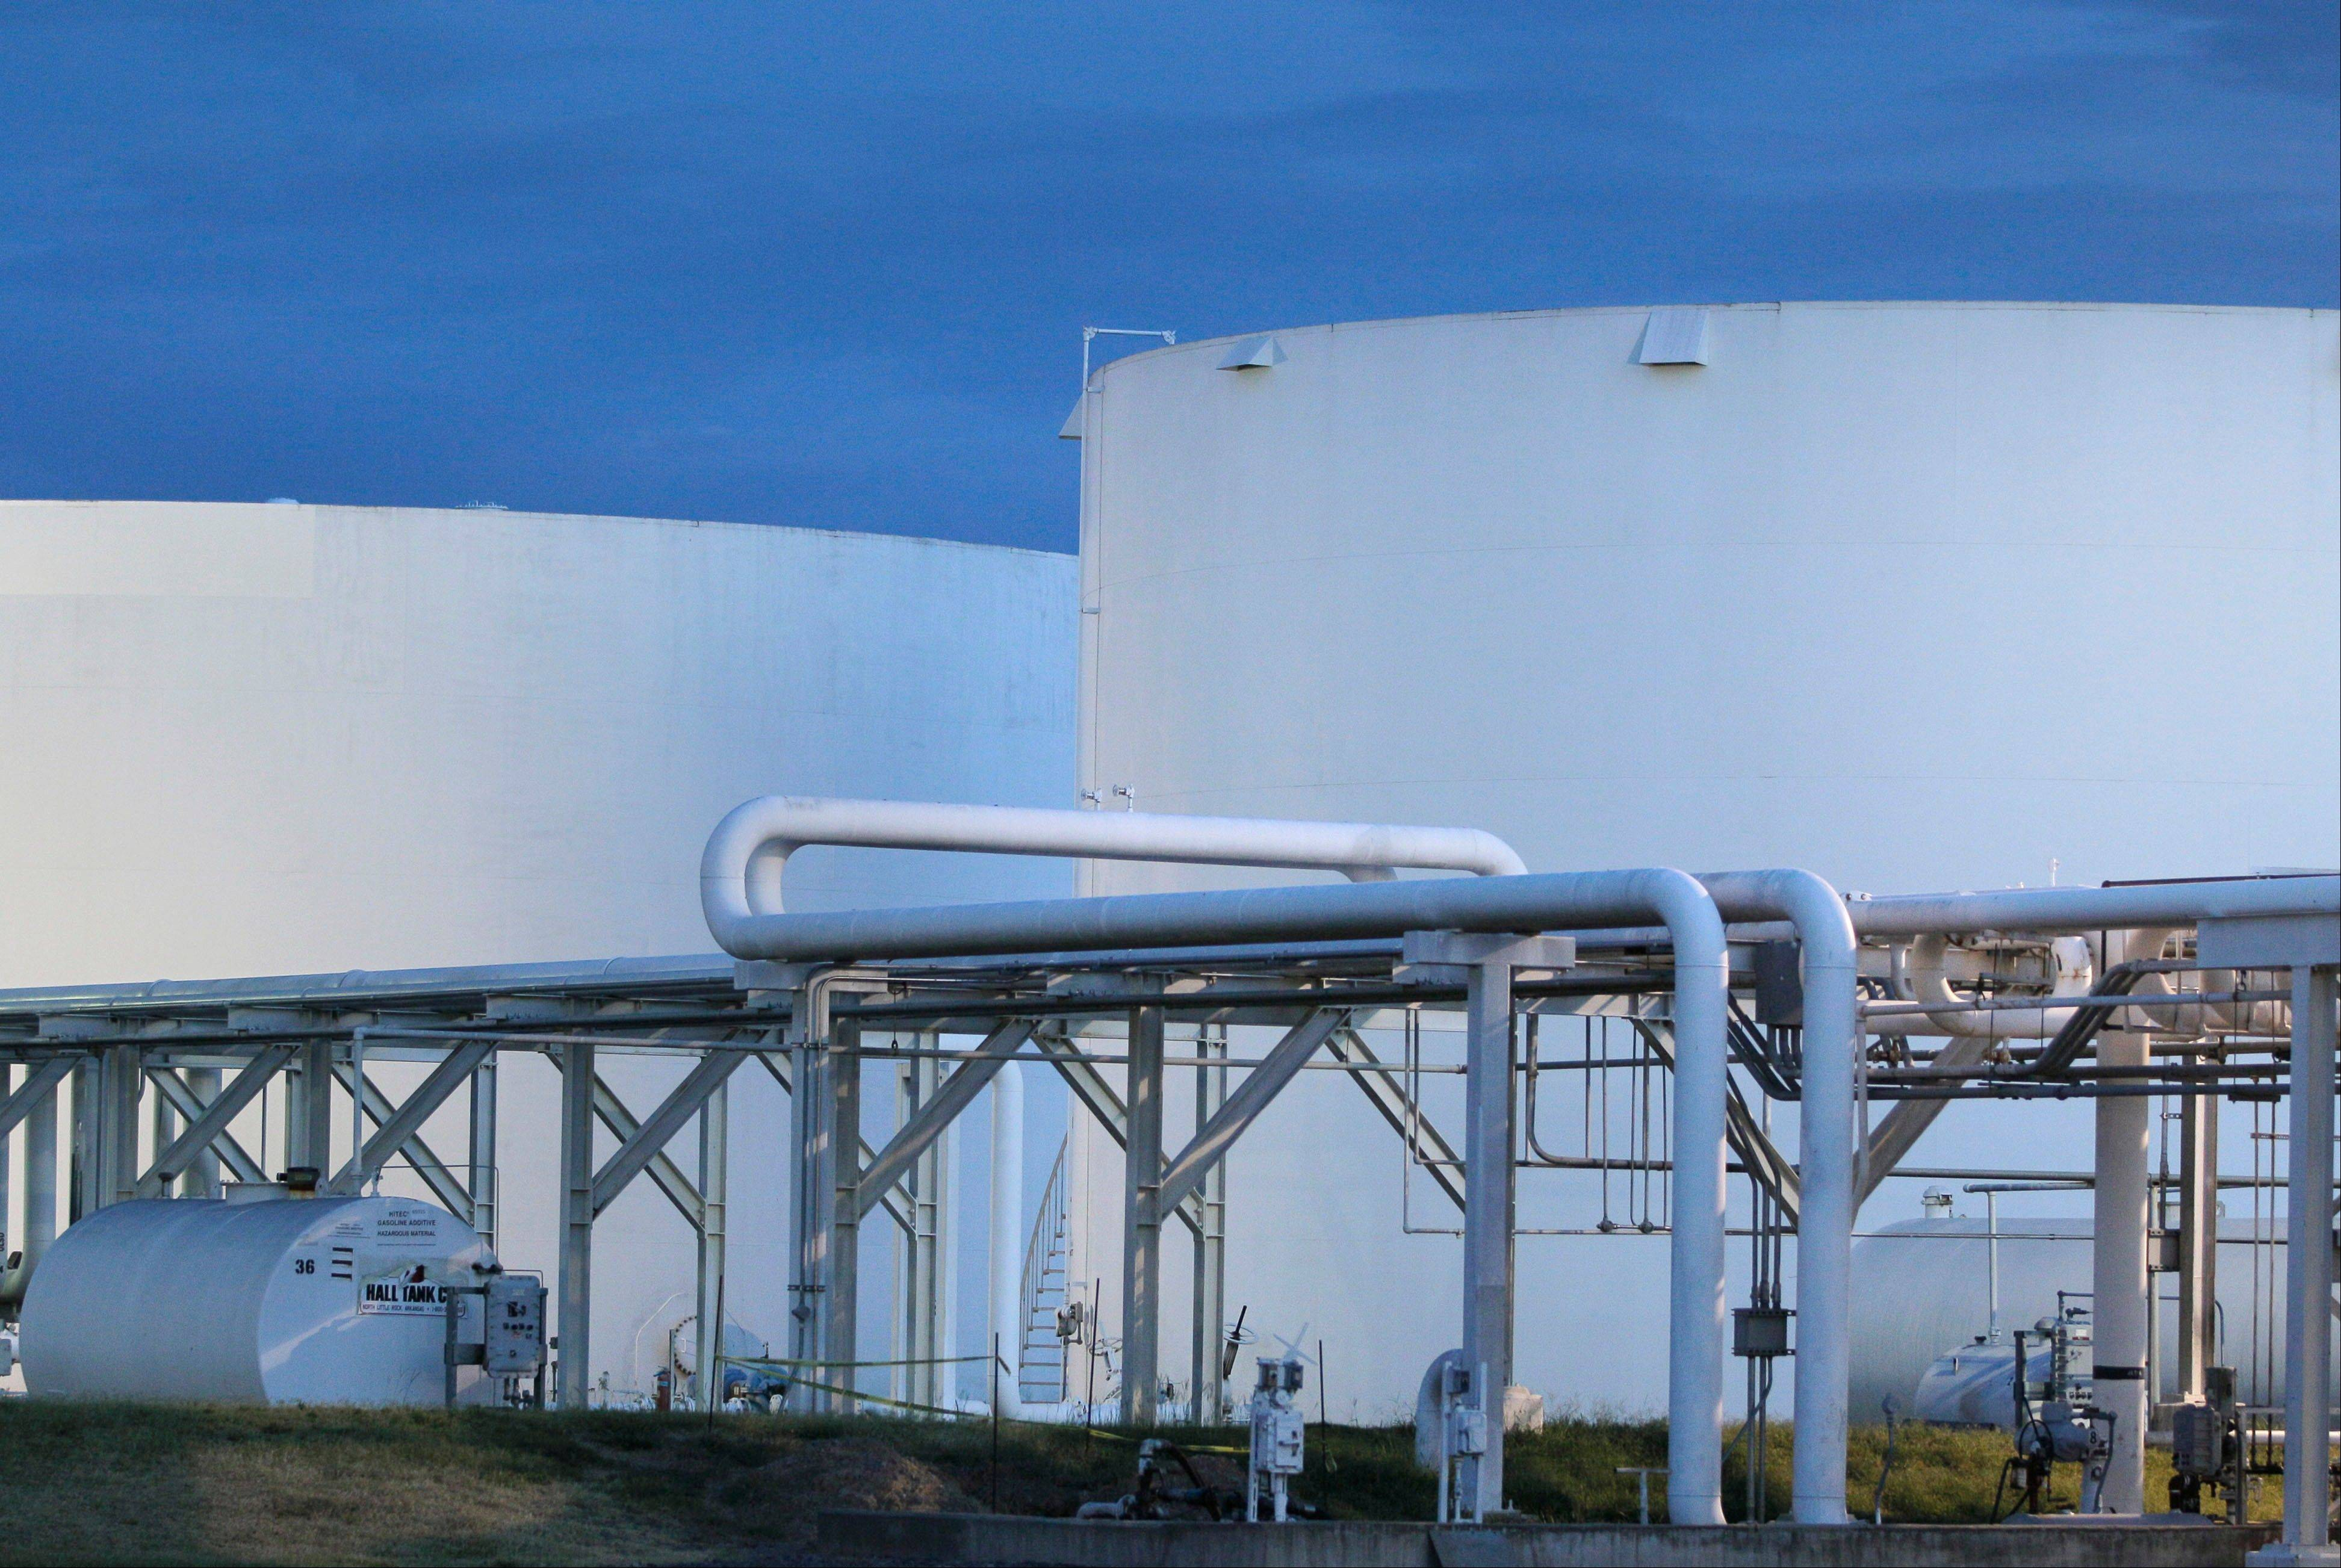 Early morning sunlight illuminates fuel storage tanks at a North Little Rock, Ark., petroleum distributorship.